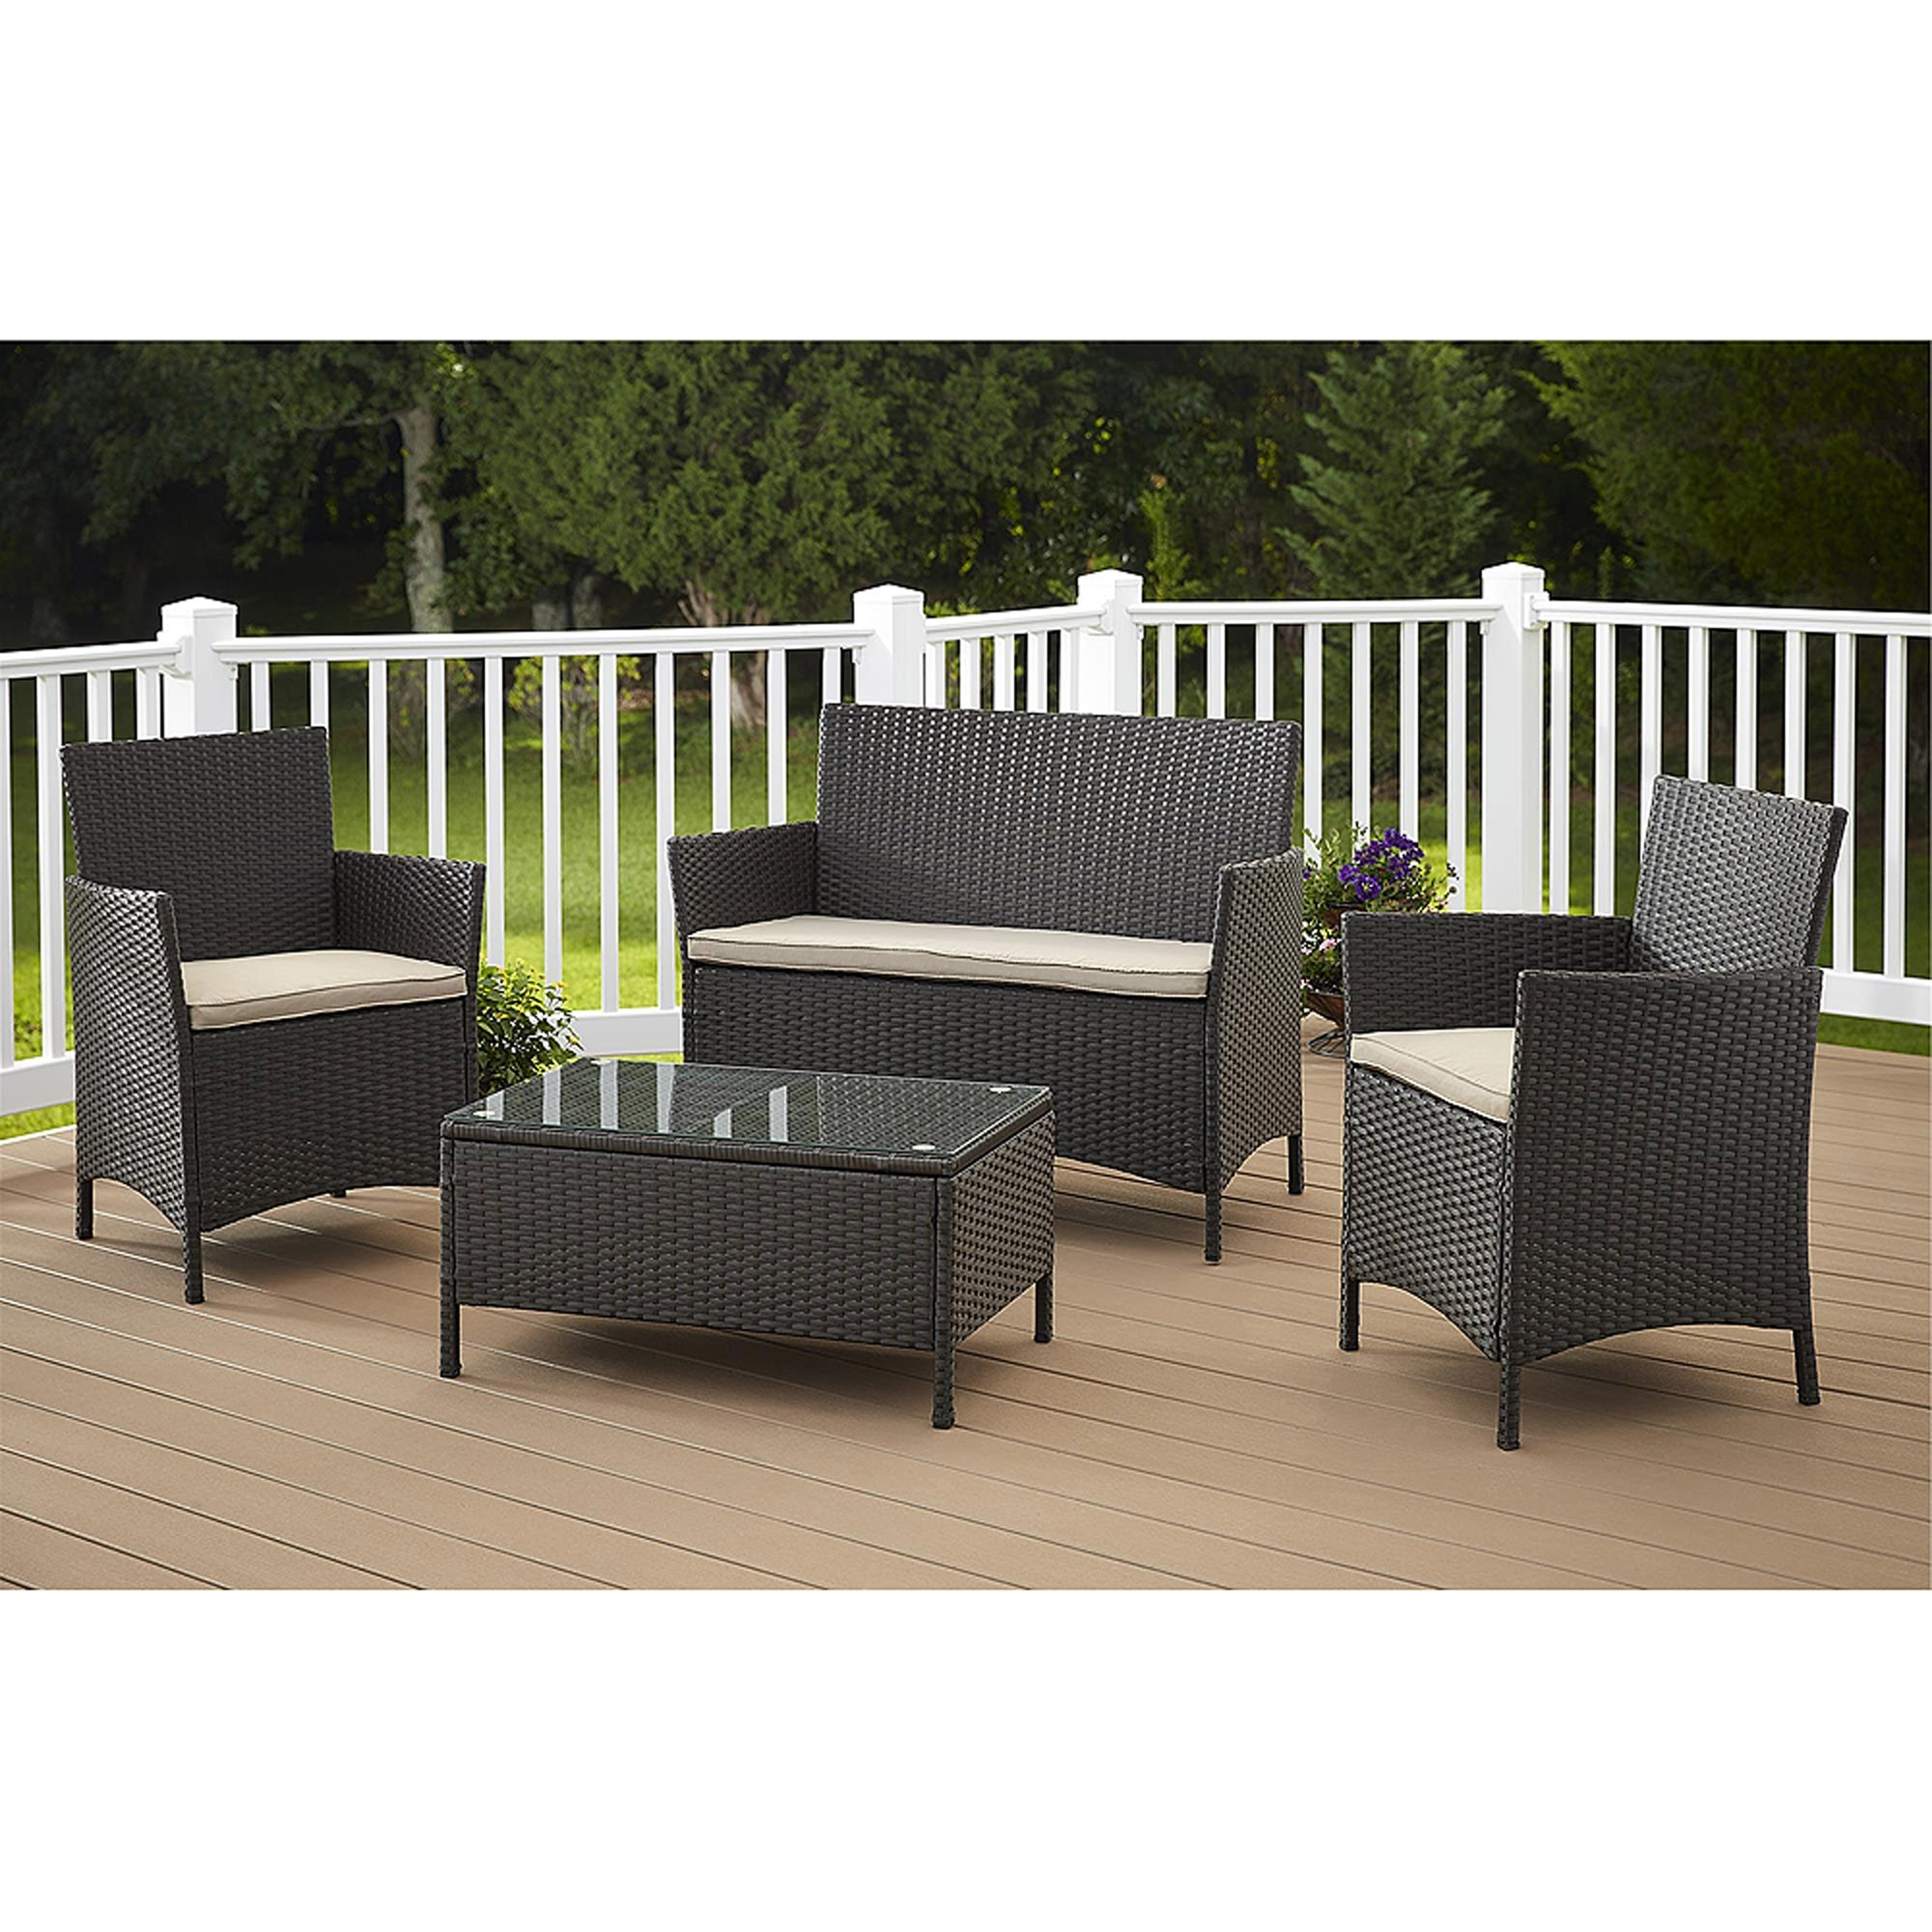 Cosco Outdoor Furniture Jamaica 4 Piece Resin Wicker Patio Furniture Intended For Most Current Wicker 4Pc Patio Conversation Sets With Navy Cushions (View 2 of 20)